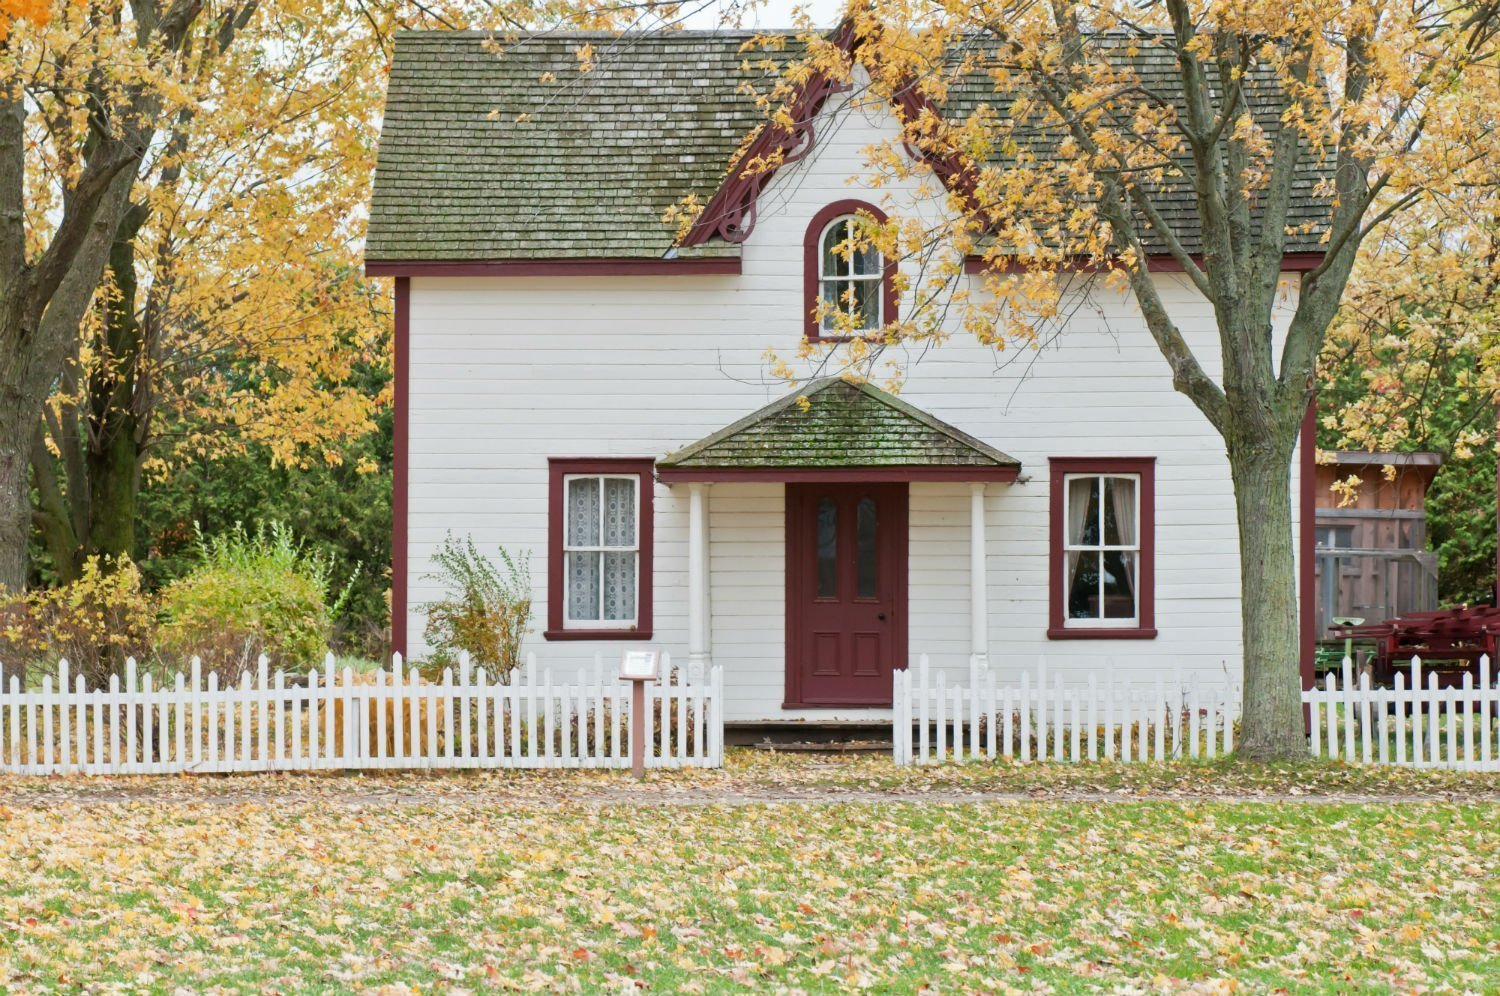 6 Simple Steps to Decrease Toxins in Your Home